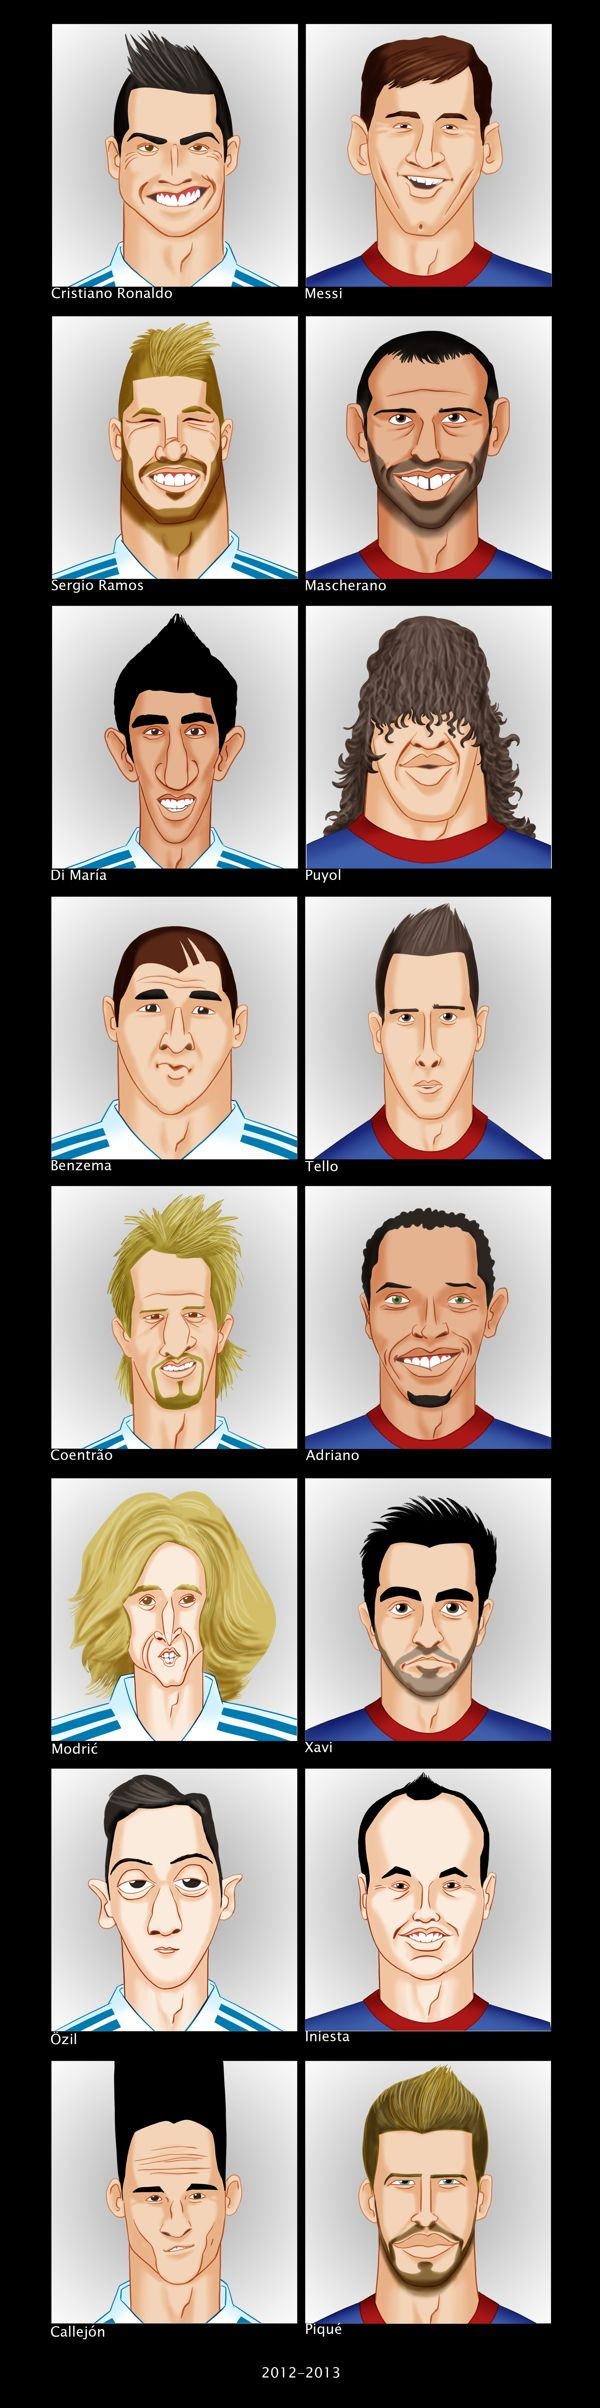 Small caricatures of football players. by Gorka Aranburu S., via Behance